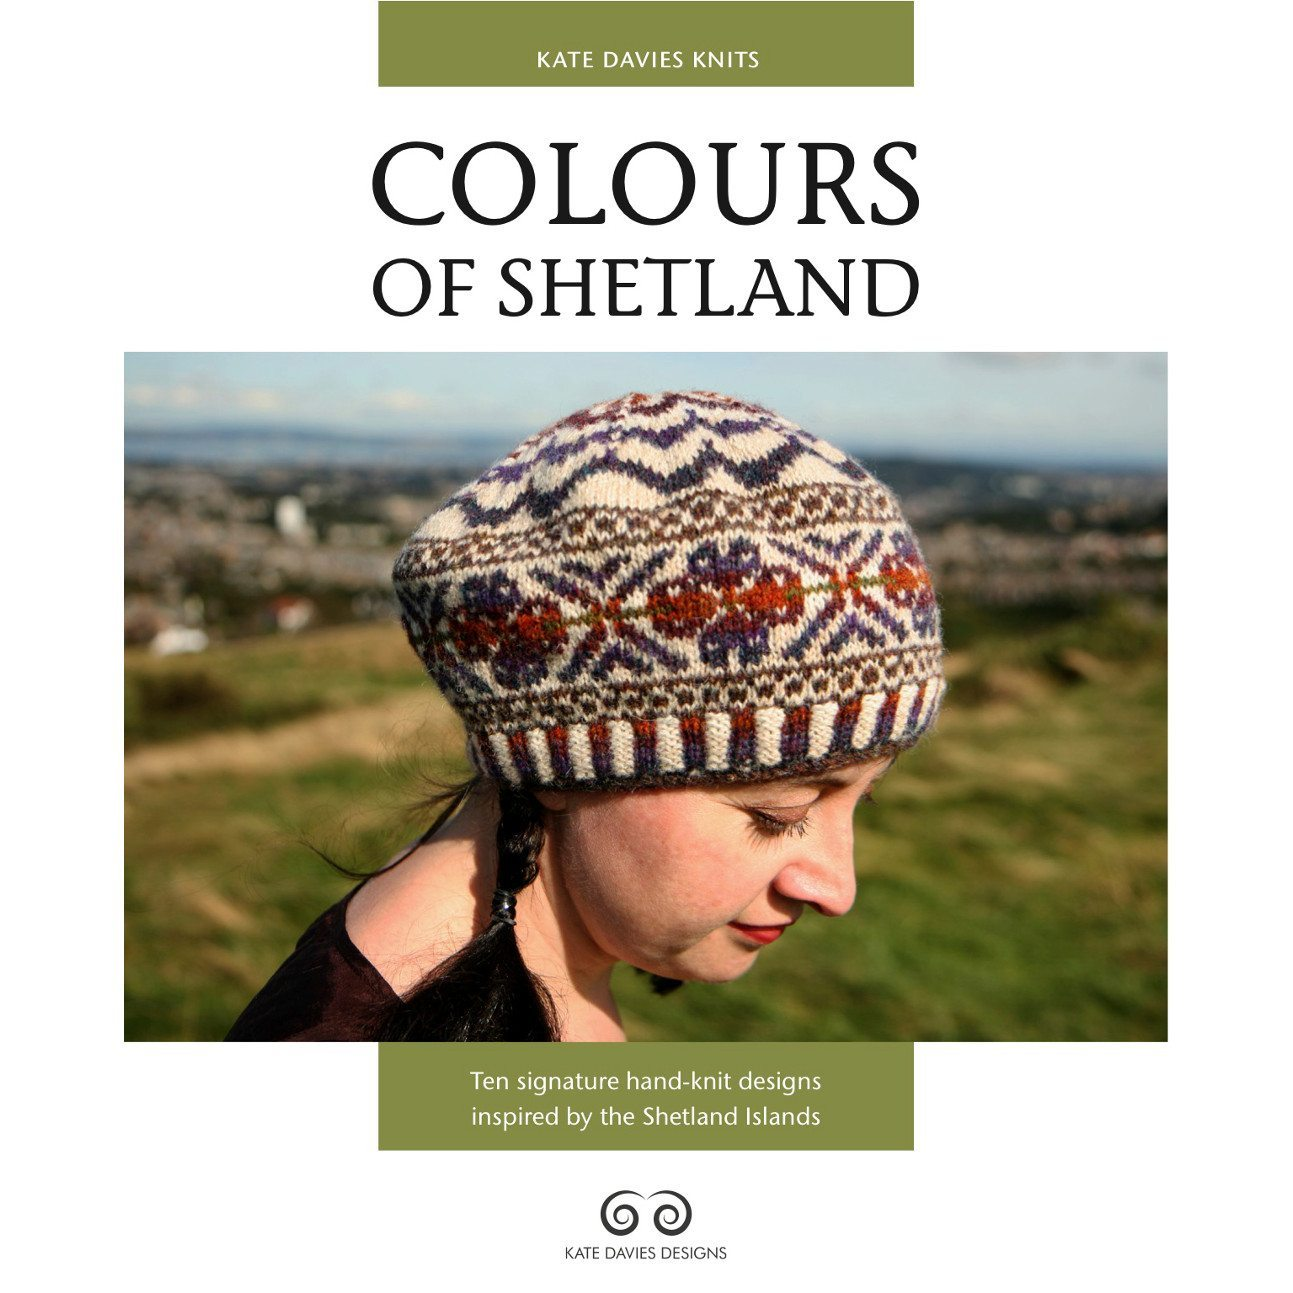 Colours of Shetland, Kate Davies, Cover